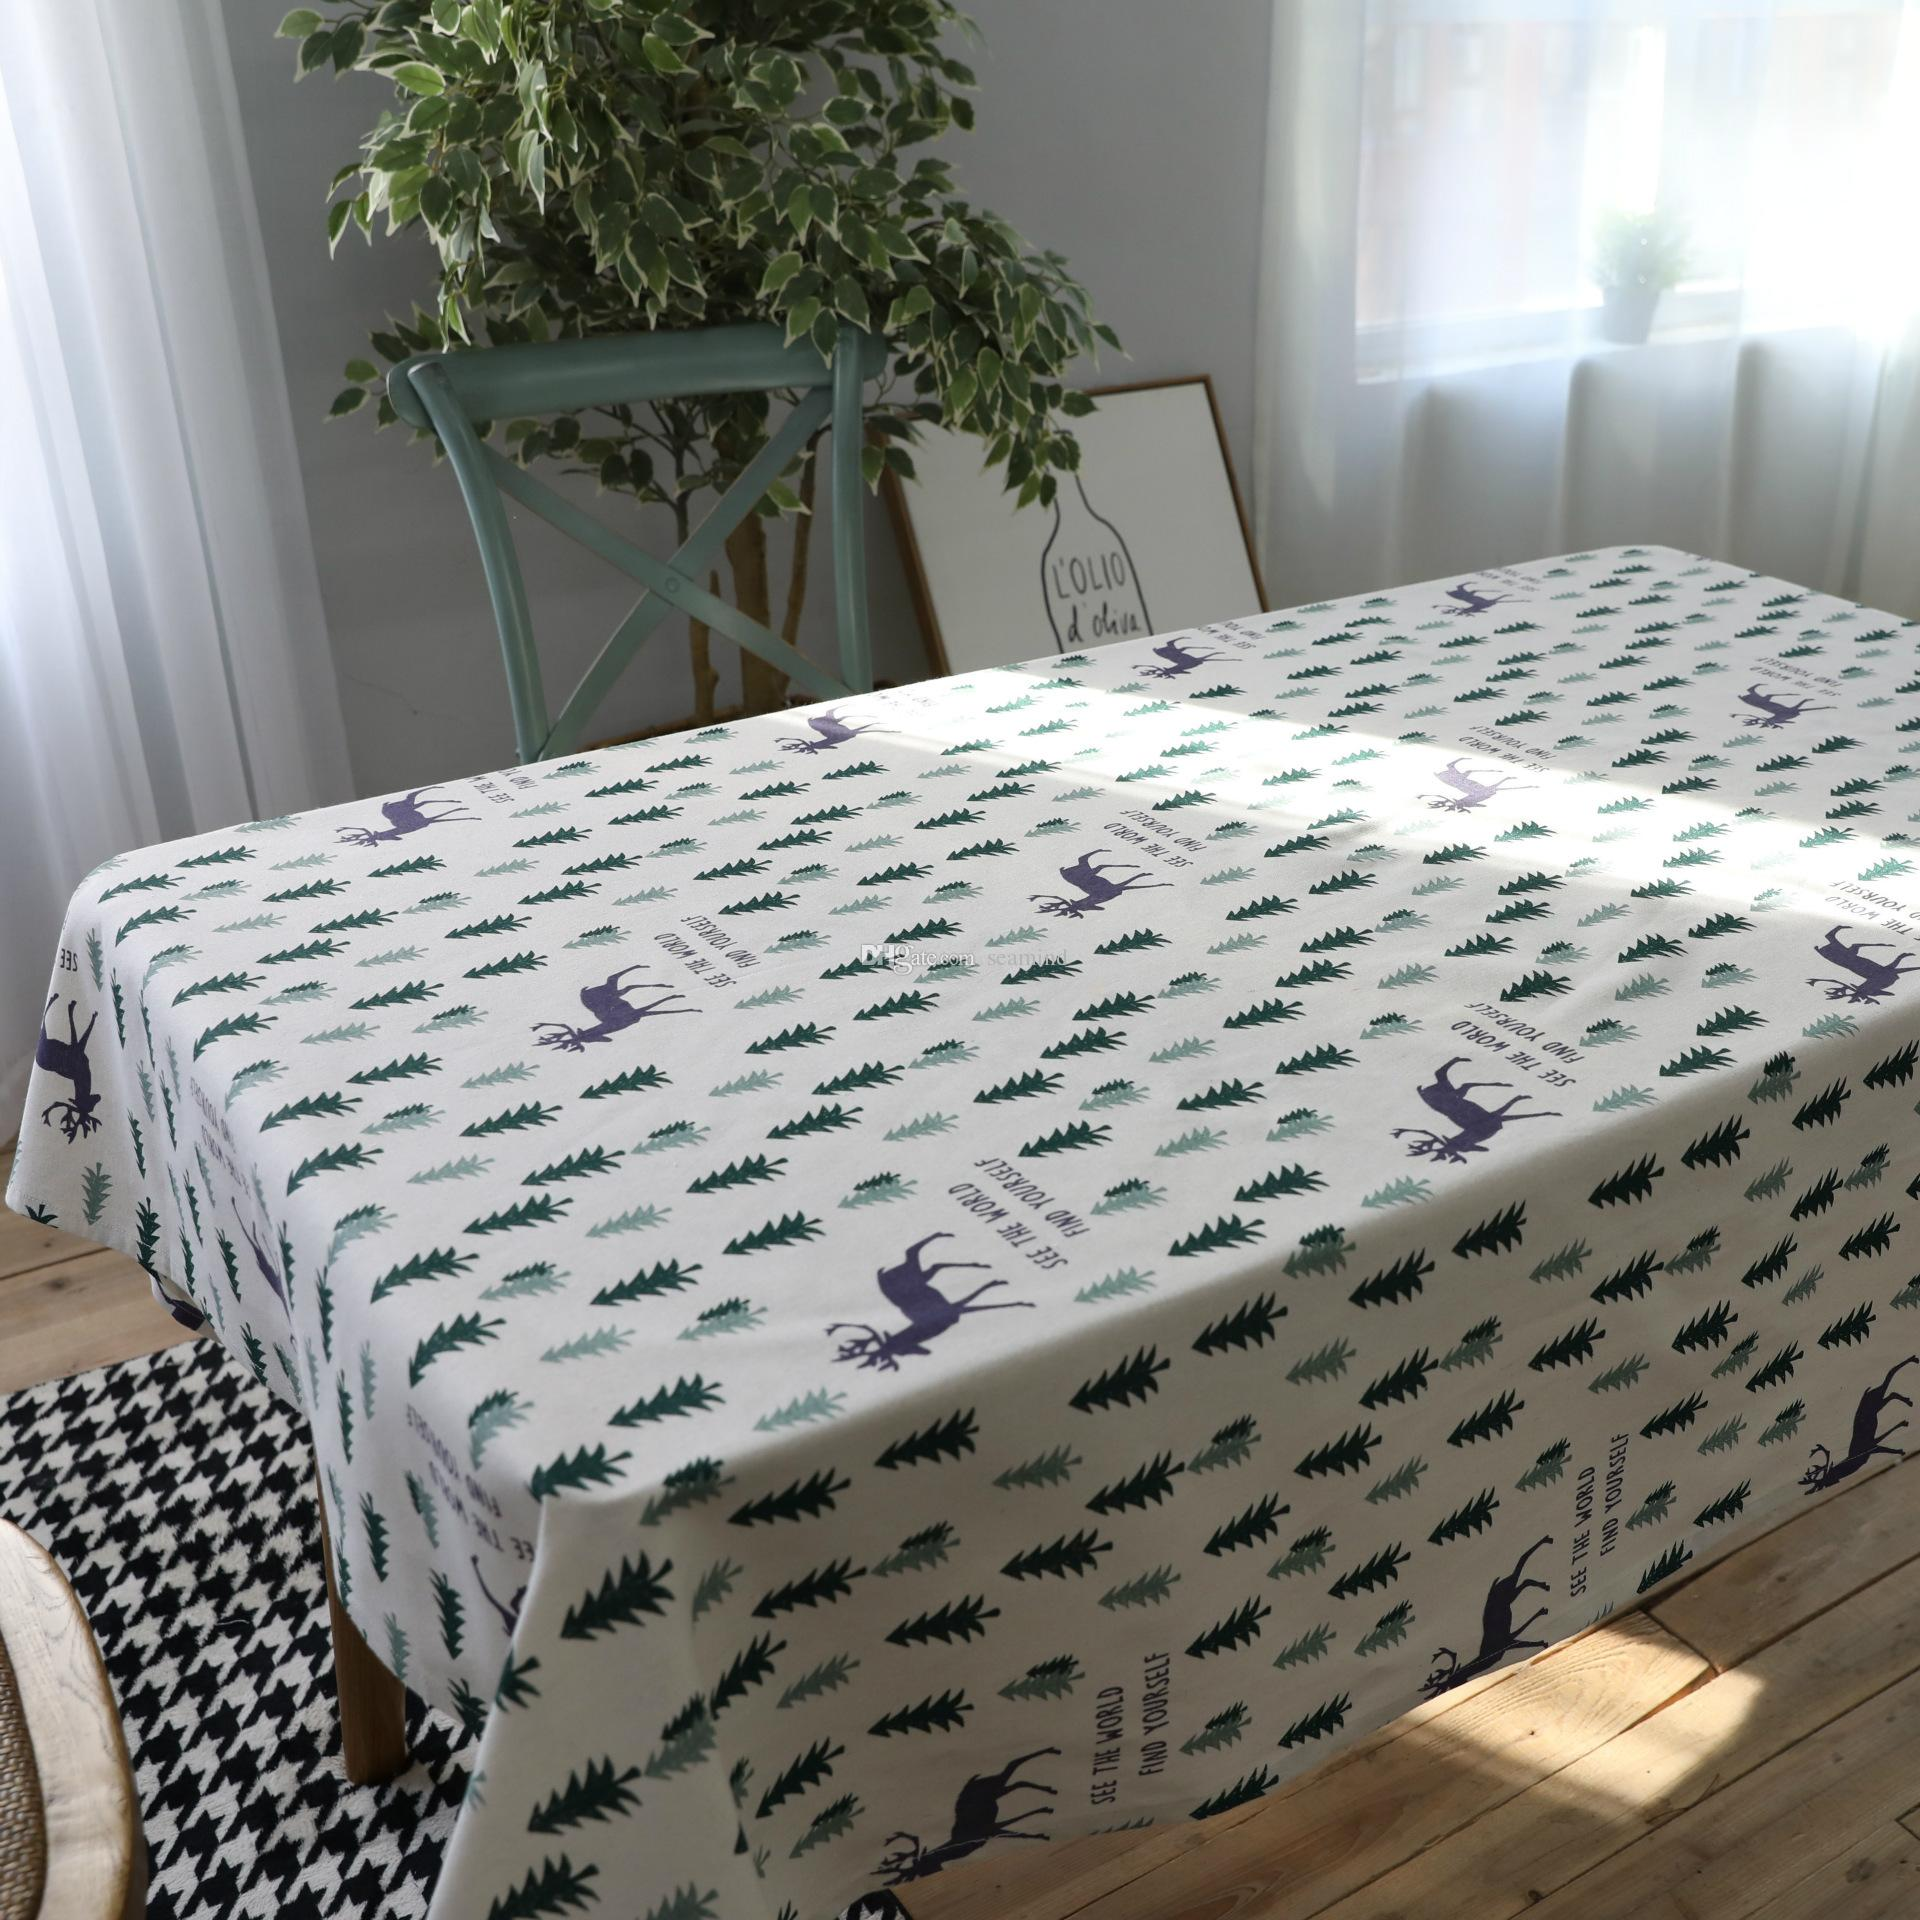 Merveilleux Simple Fresh Linen Cotton Table Cloth Country Style Christmas Tree Solid  Multifunctional Rectangle Table Cover Tablecloth Picnic Blanket Small  Tablecloths ...